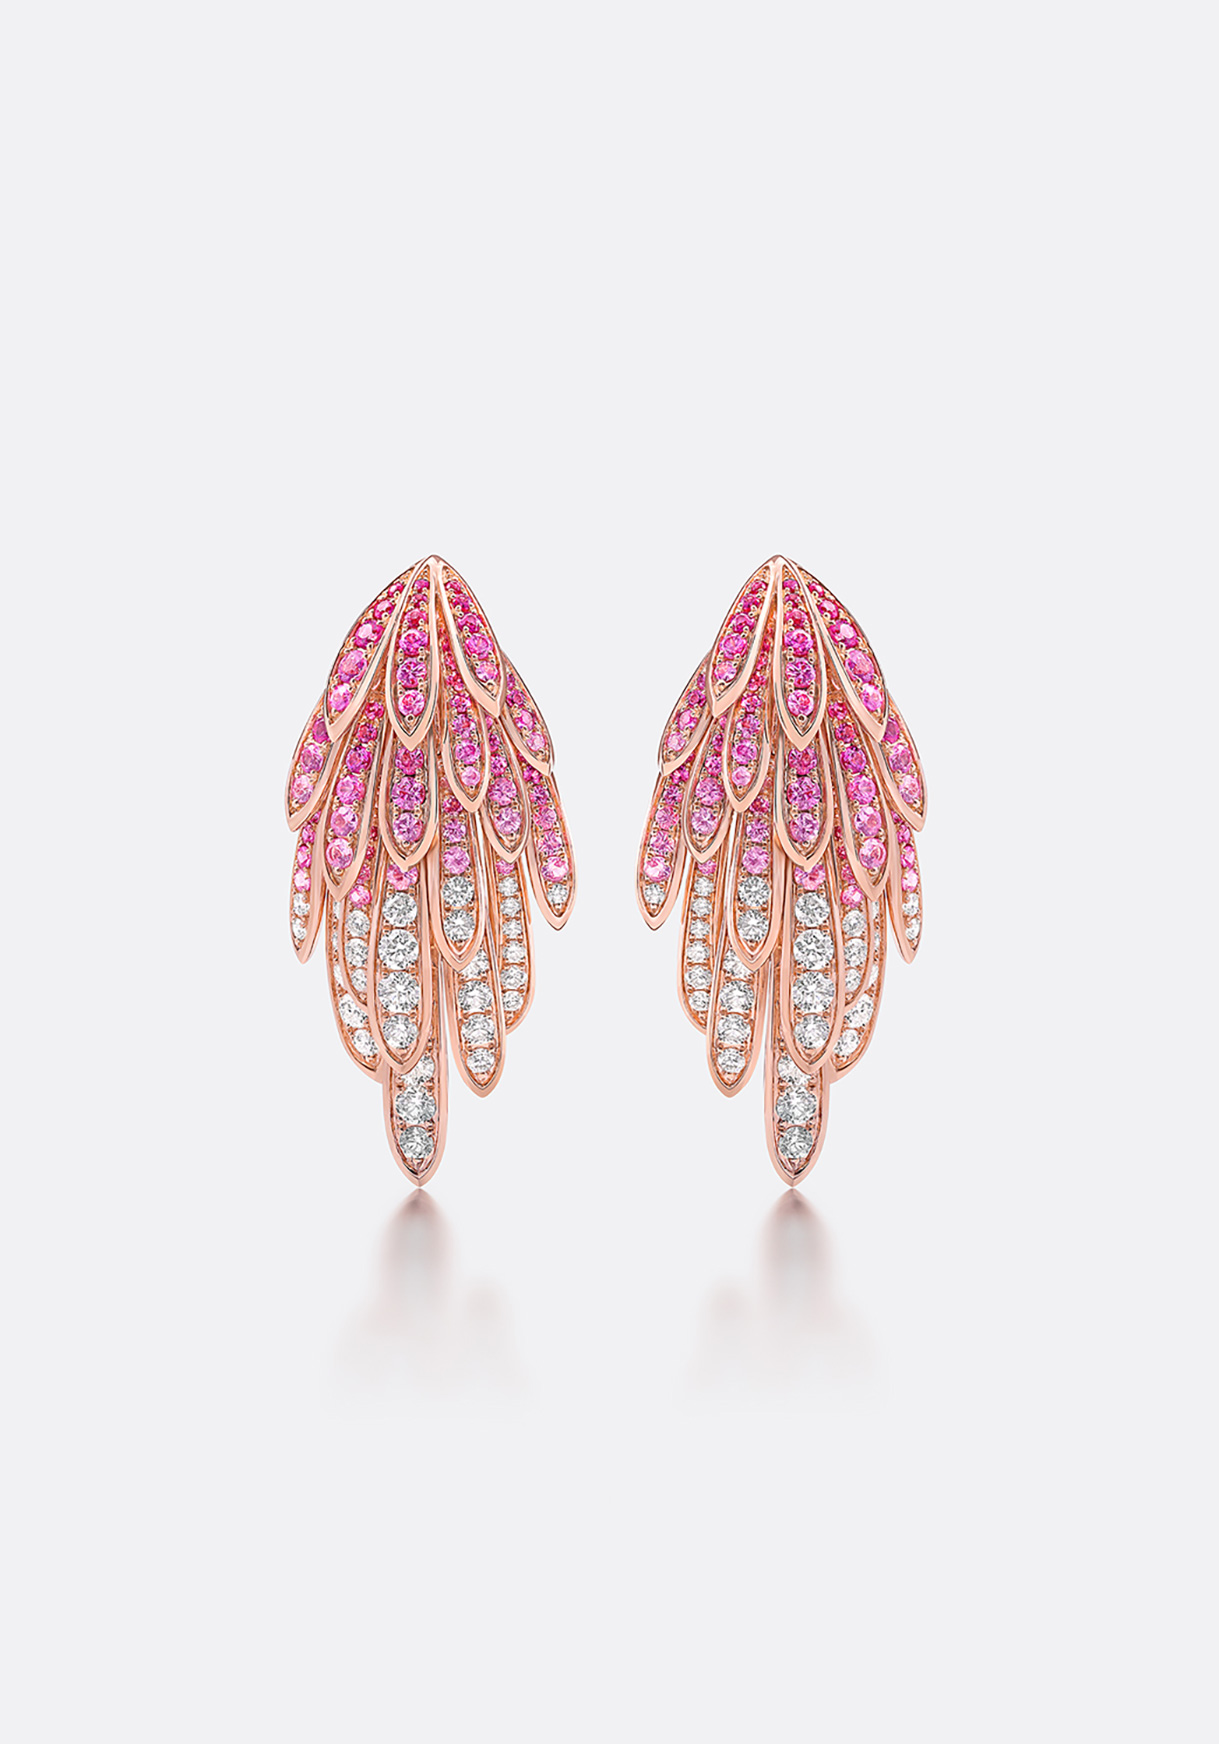 Earrings with a stunning gradation of colour and sparkle.